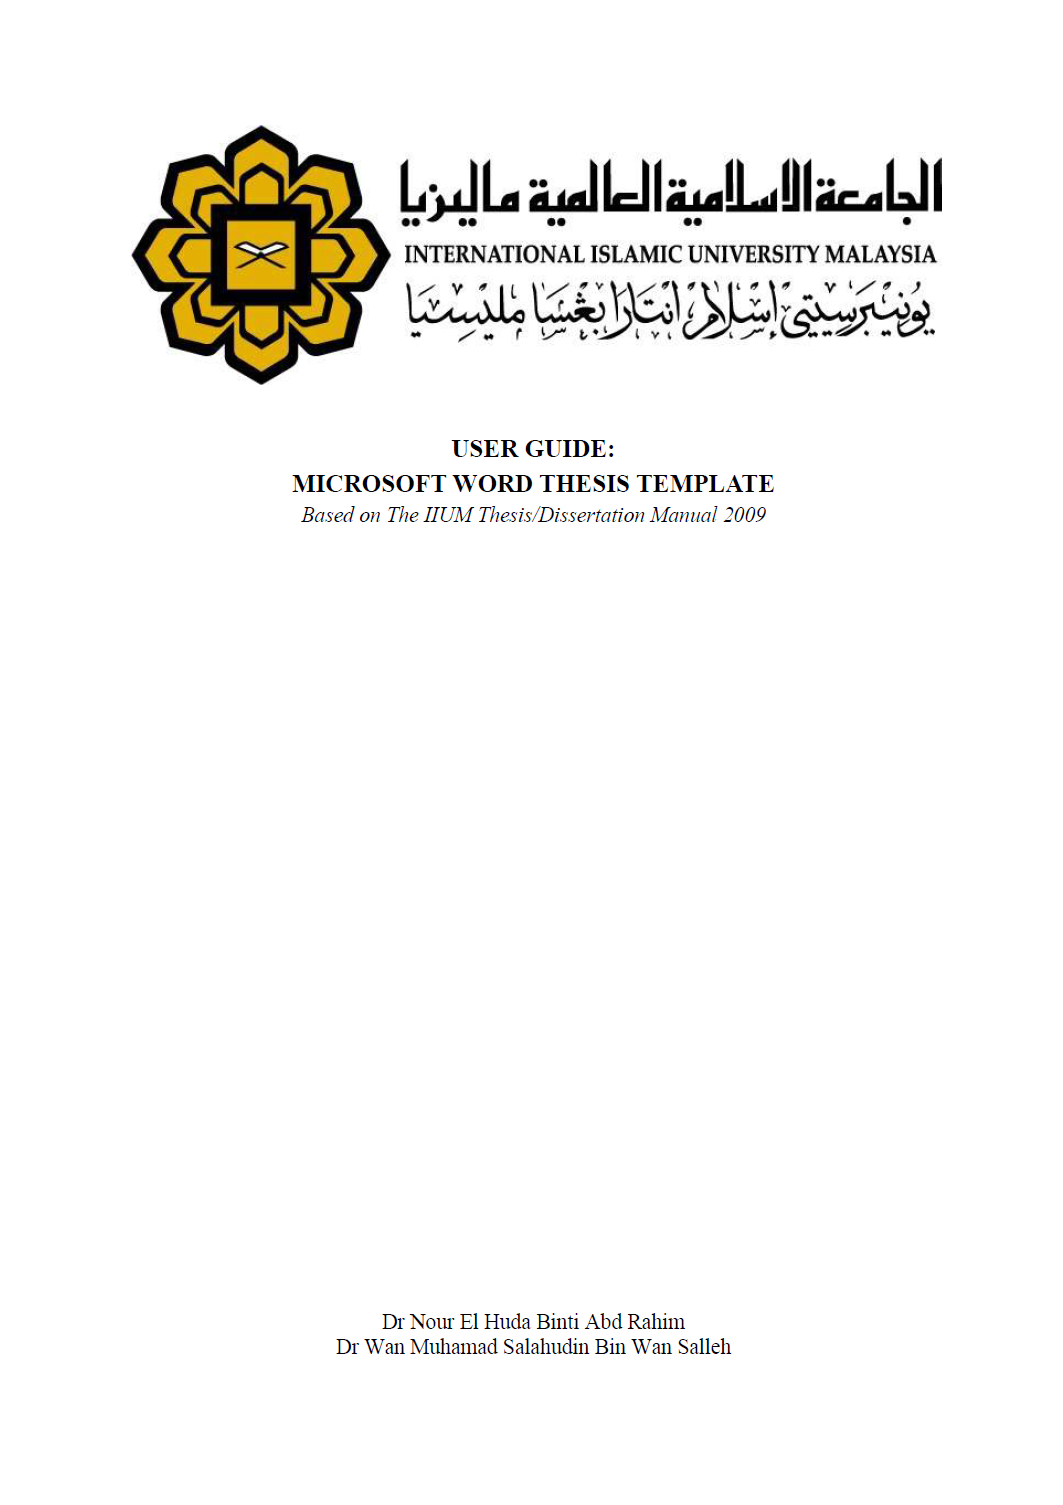 iium cps thesis manual